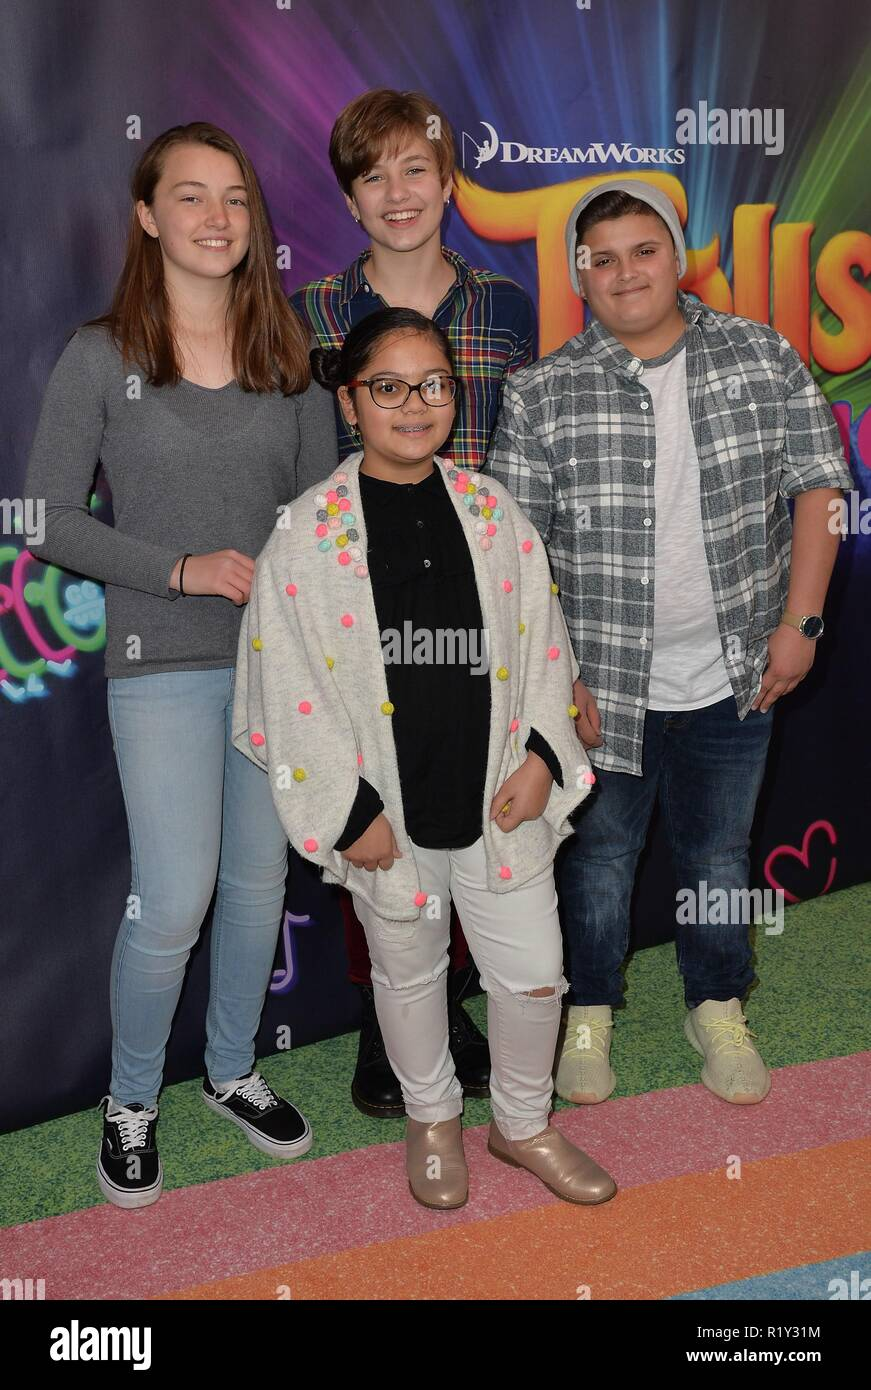 New York, NY, USA. 14th Nov, 2018. Top Chef Jr Photo Call for DREAMWORKS TROLLS THE EXPERIENCE, 218 West 57th Street, New York, NY November 14, 2018. Credit: Kristin Callahan/Everett Collection/Alamy Live News - Stock Image